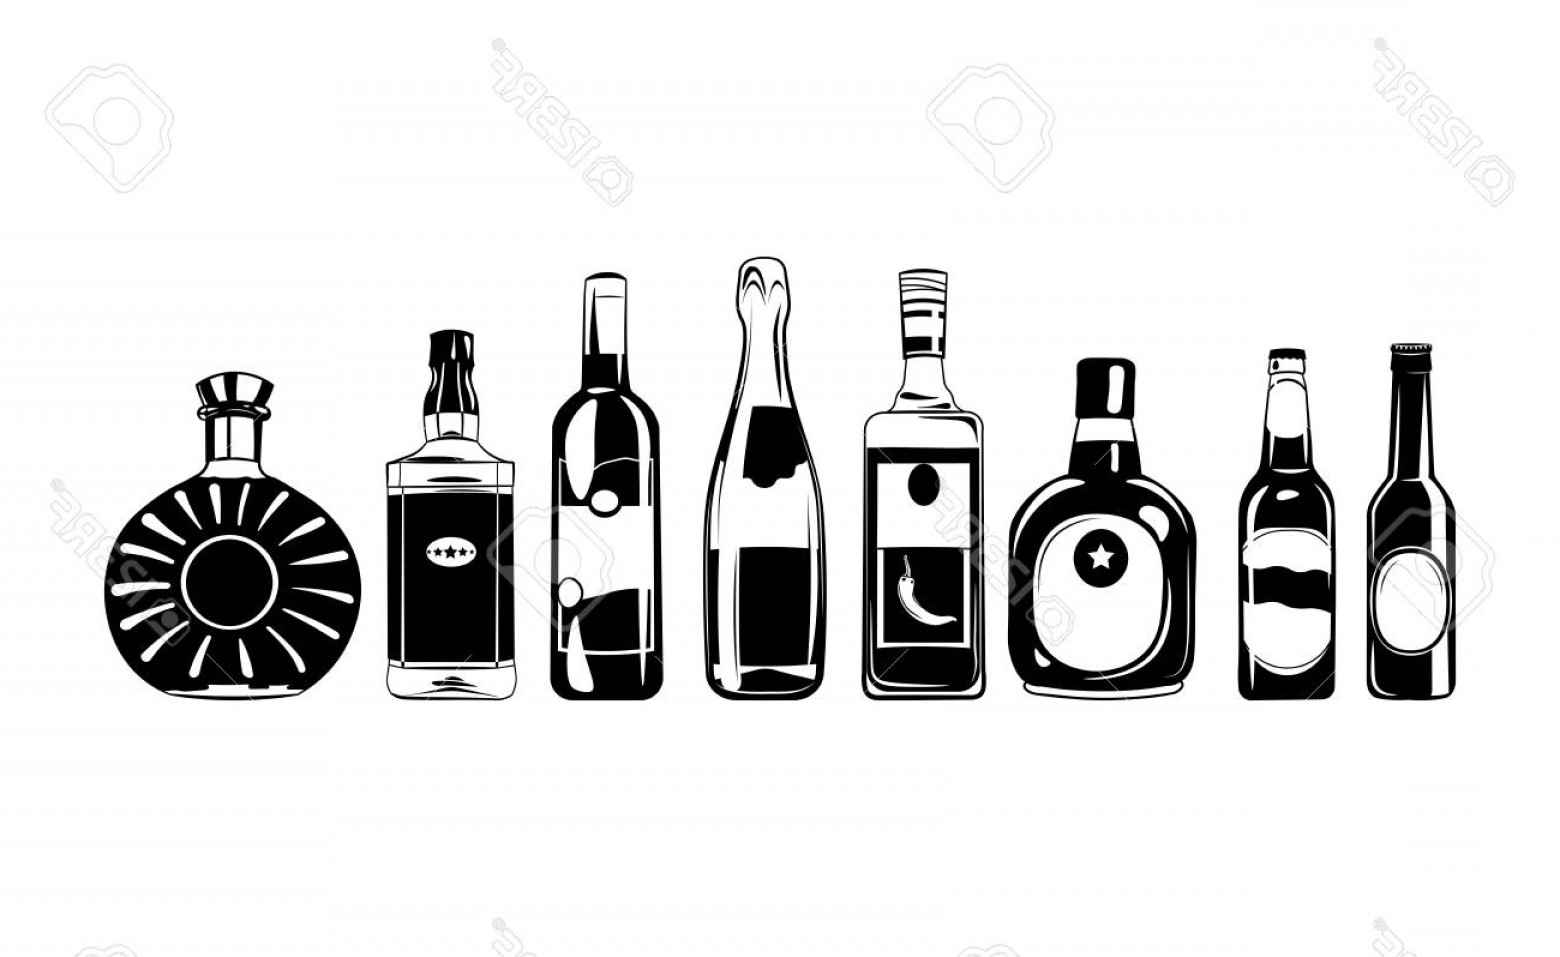 Alcohol Vector: Photostock Vector Alcohol Bottles Set Vector Design Elements Illustration Isolated On White Background